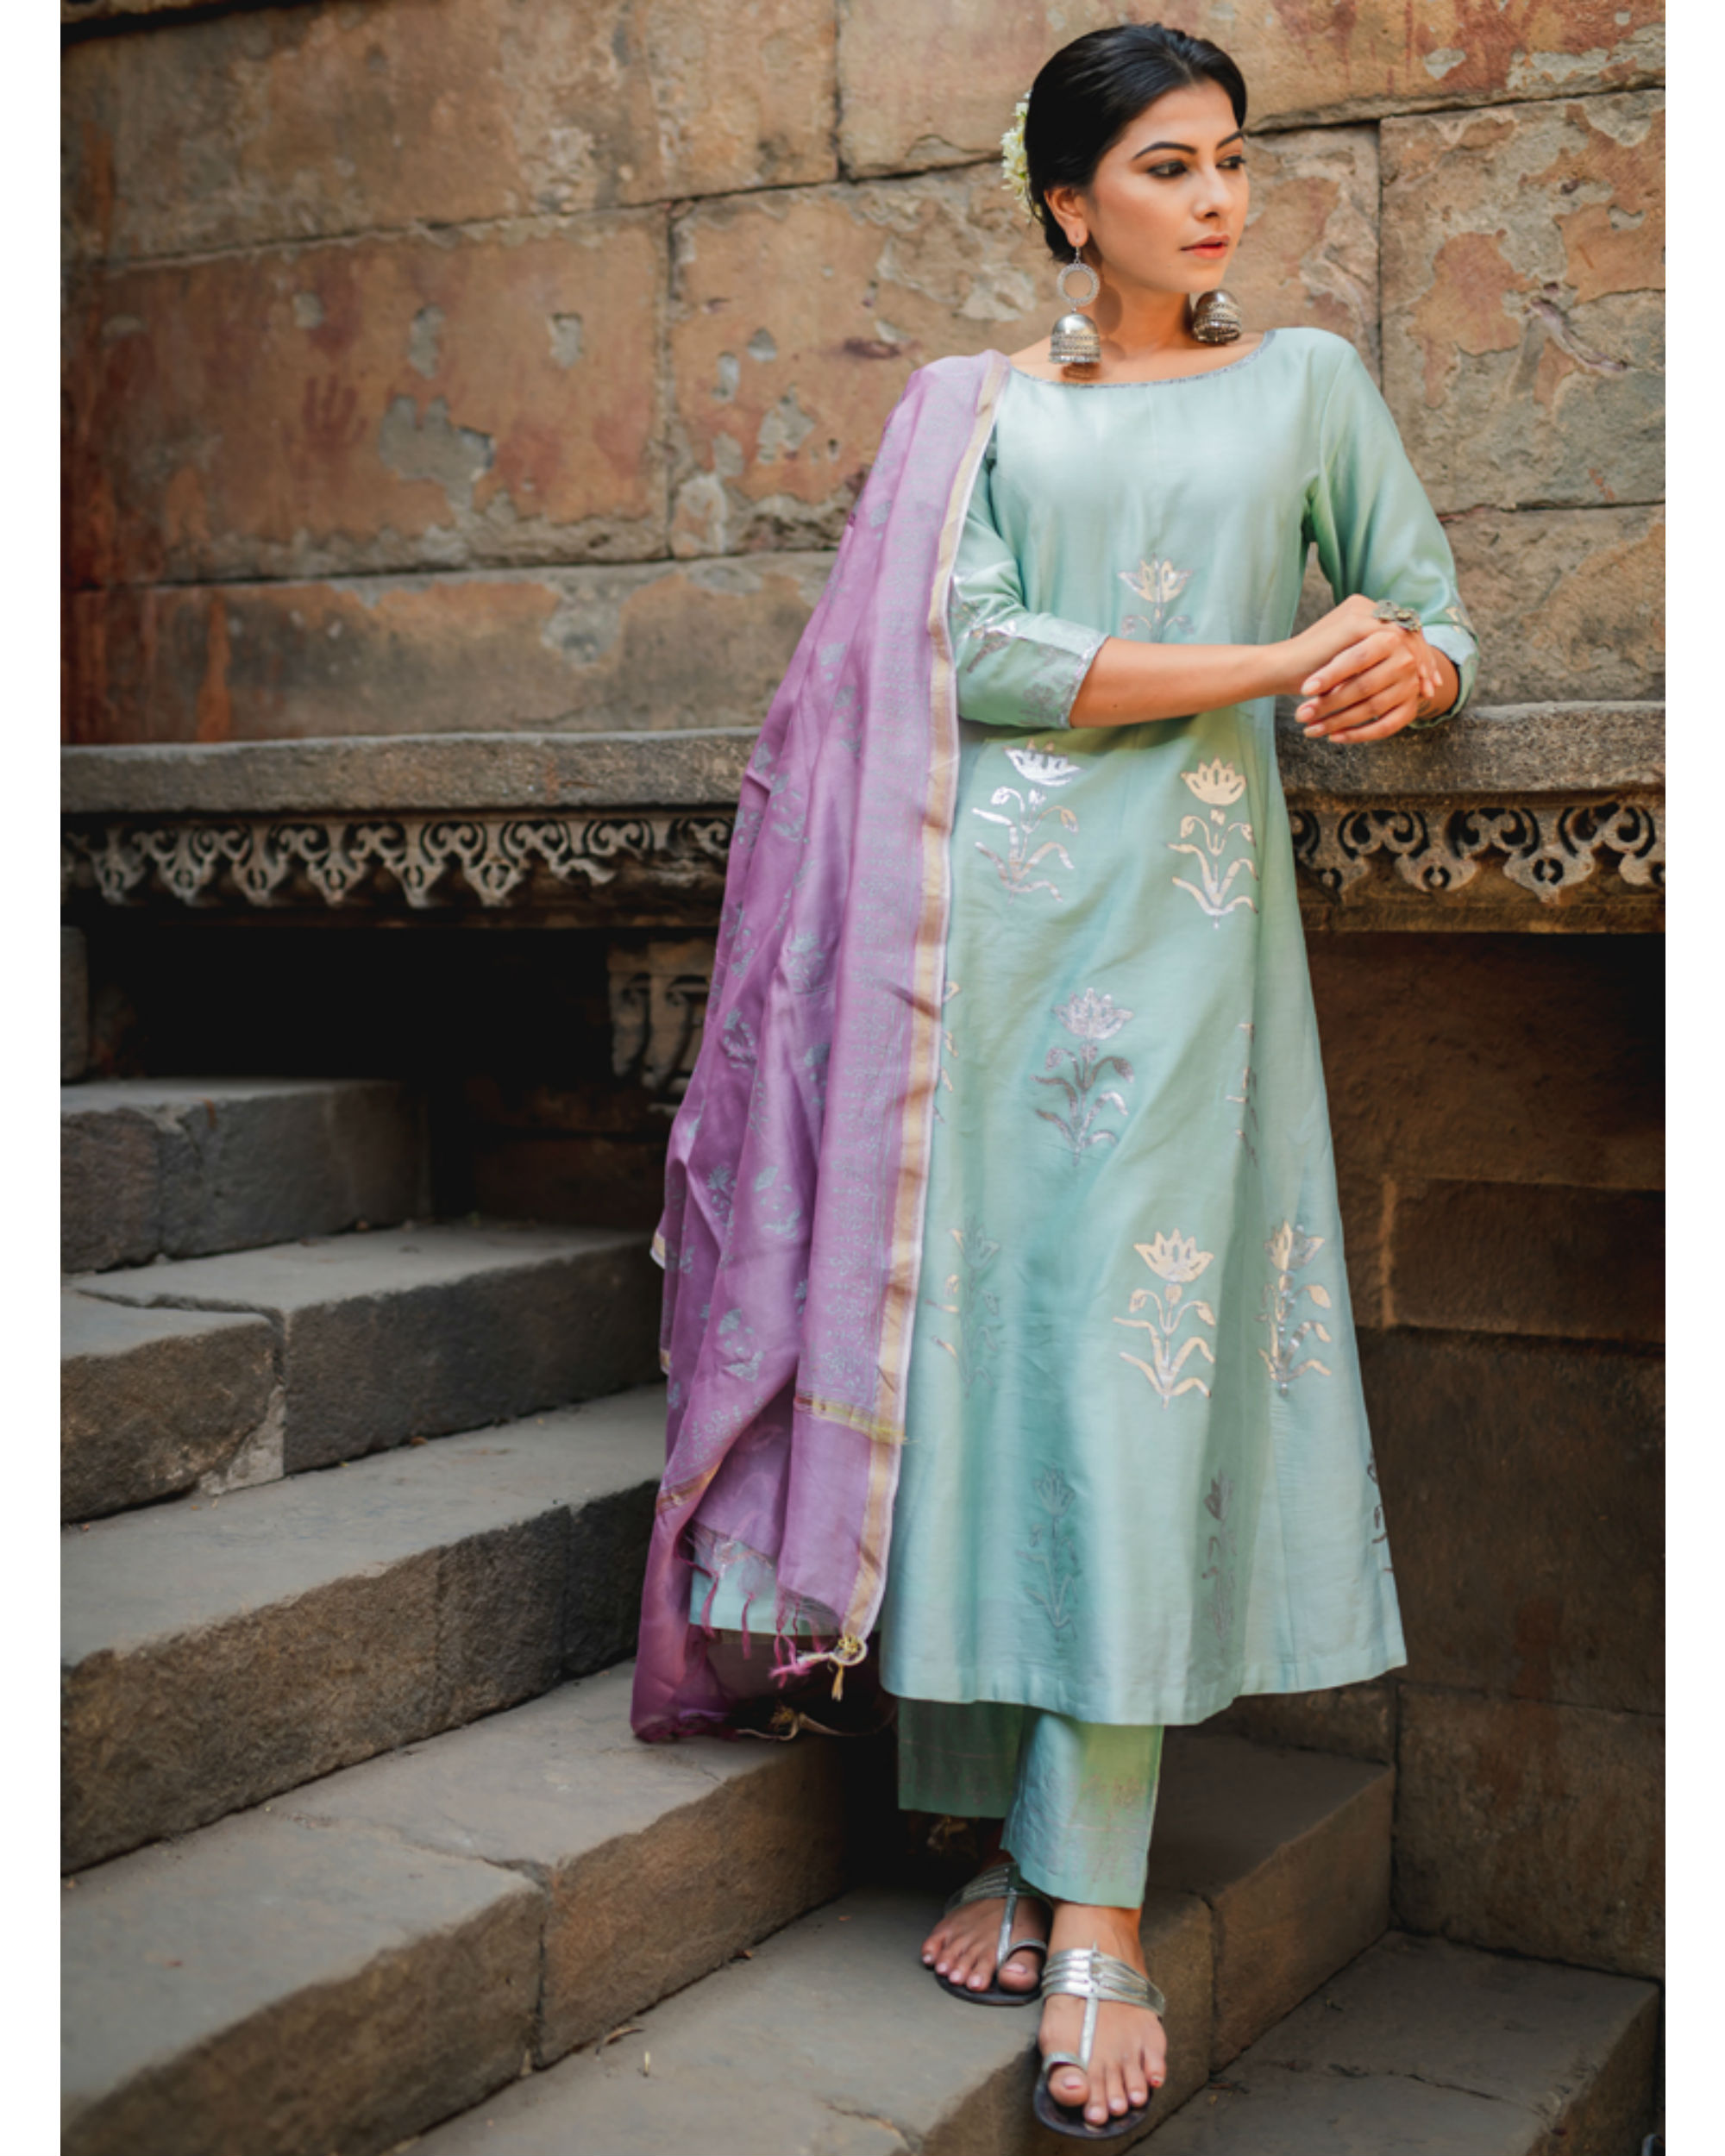 Mint green floral printed set with dupatta